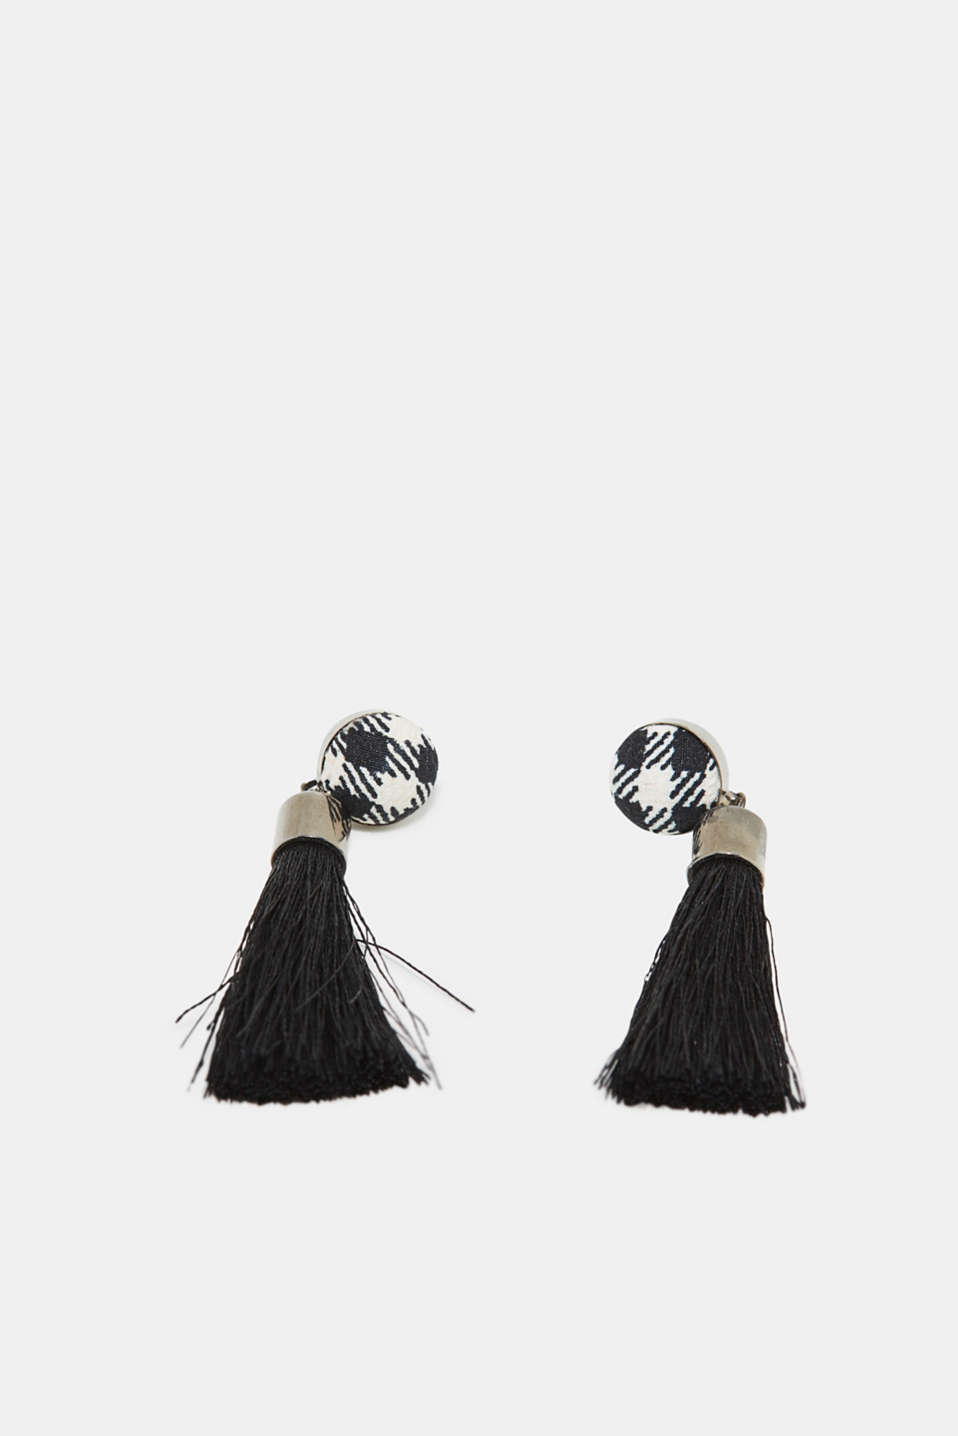 Esprit - Stud earrings with tassels